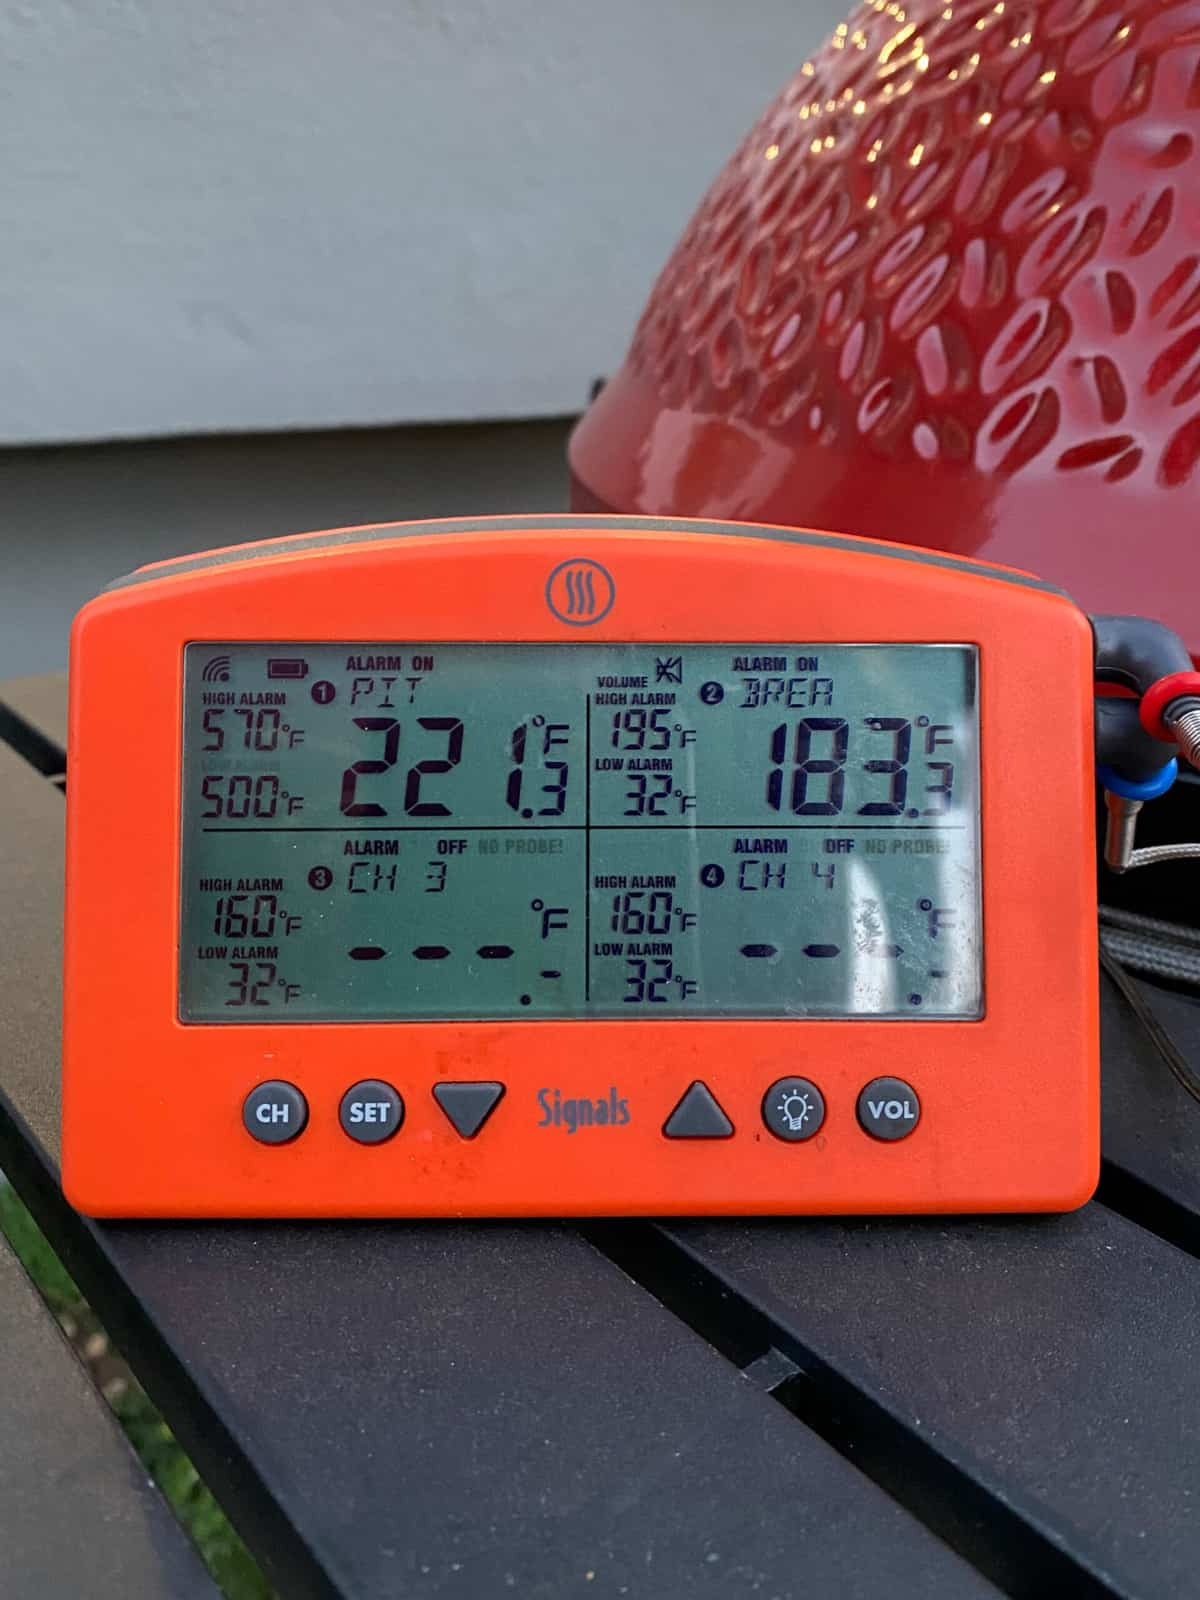 digital thermometer with 2 probes attached to monitor the grill temp and meat temp